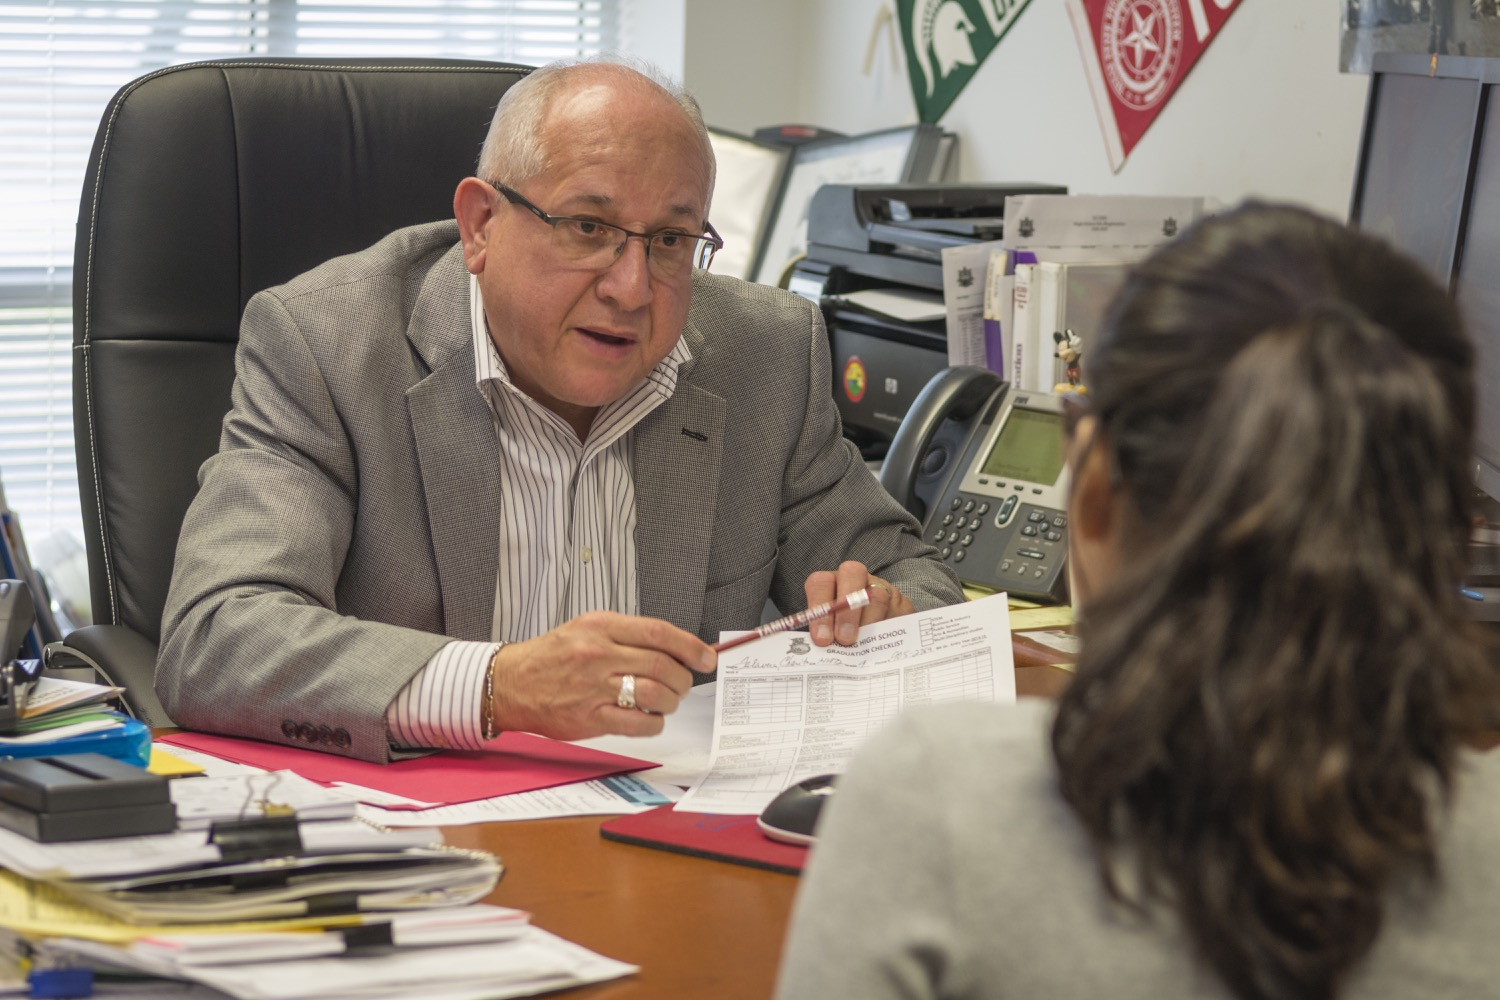 A student talks with Roberto V. García, migrant student counselor, in his office at Edinburg High School. They discus her education and her time spent away from school as her family travels for farm work. ©2018/Jerry Redfern